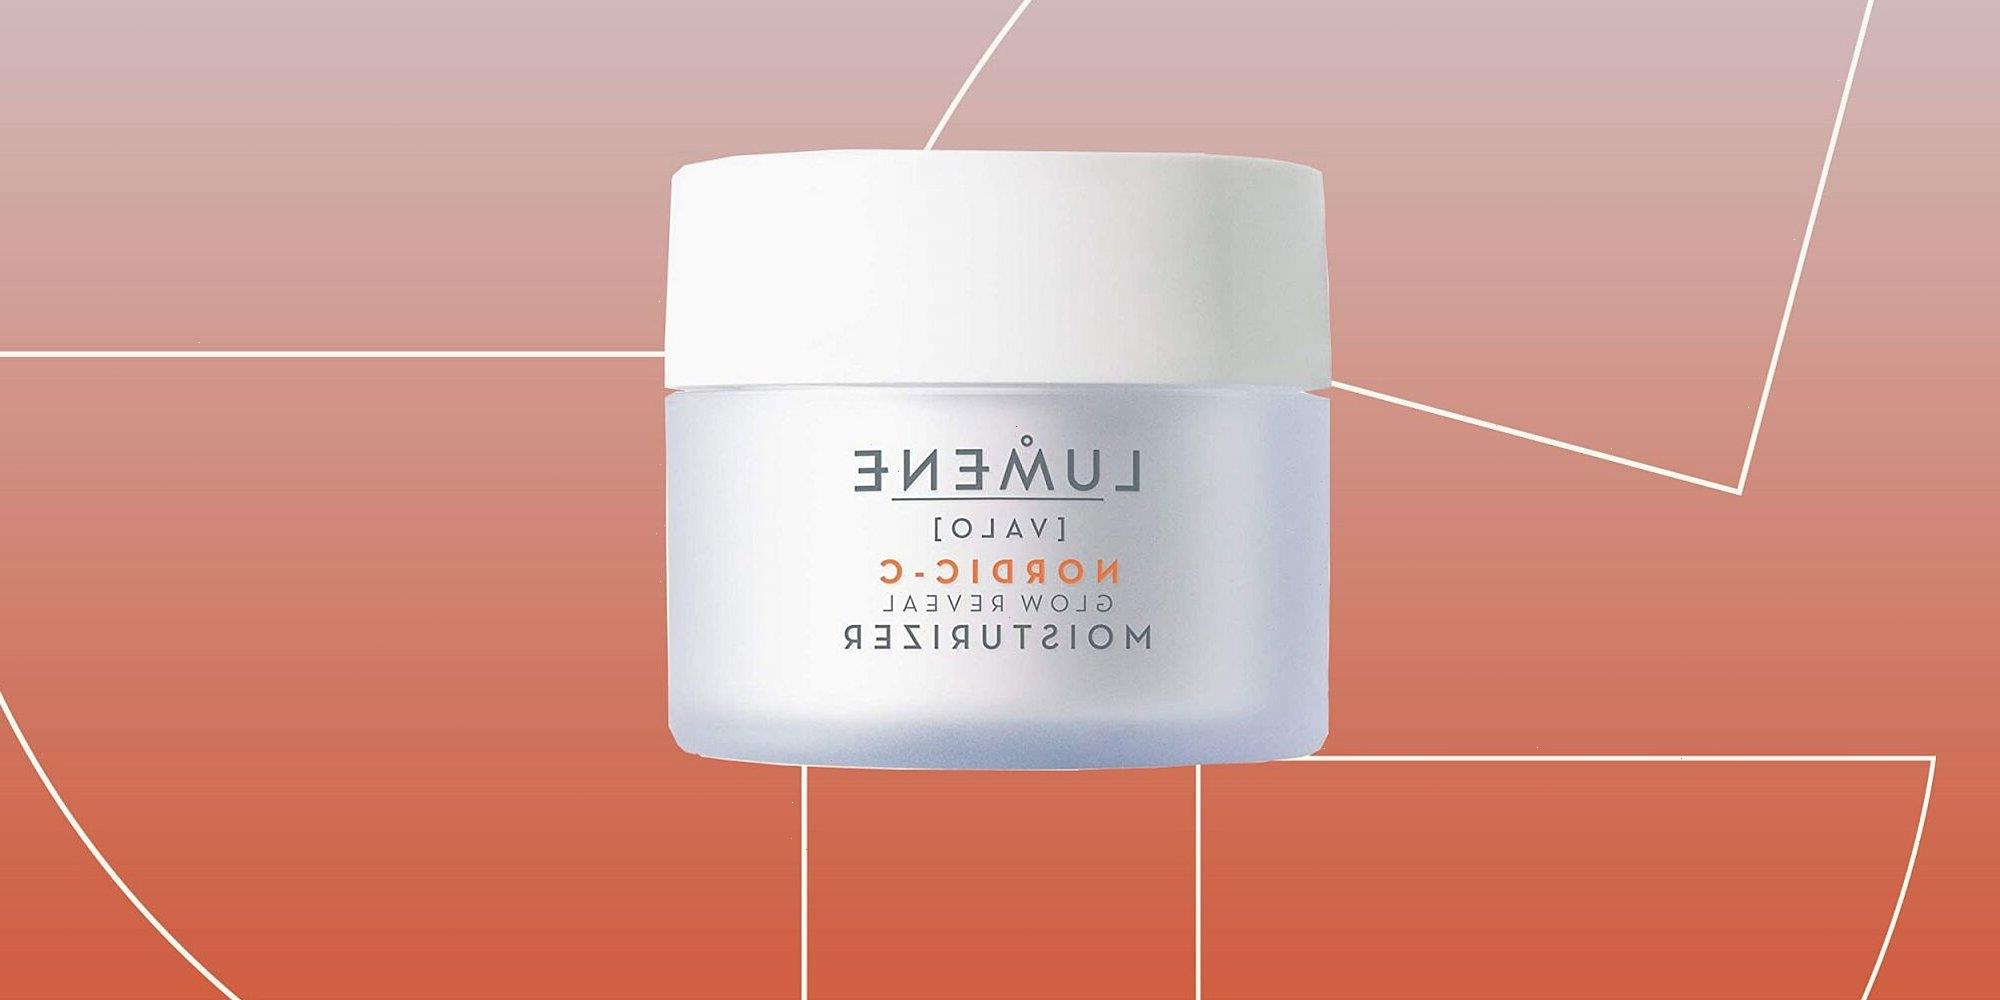 Middle-Aged Shoppers Say This Drugstore Moisturizer Shrinks Their Crow's Feet Better Than Anything Else